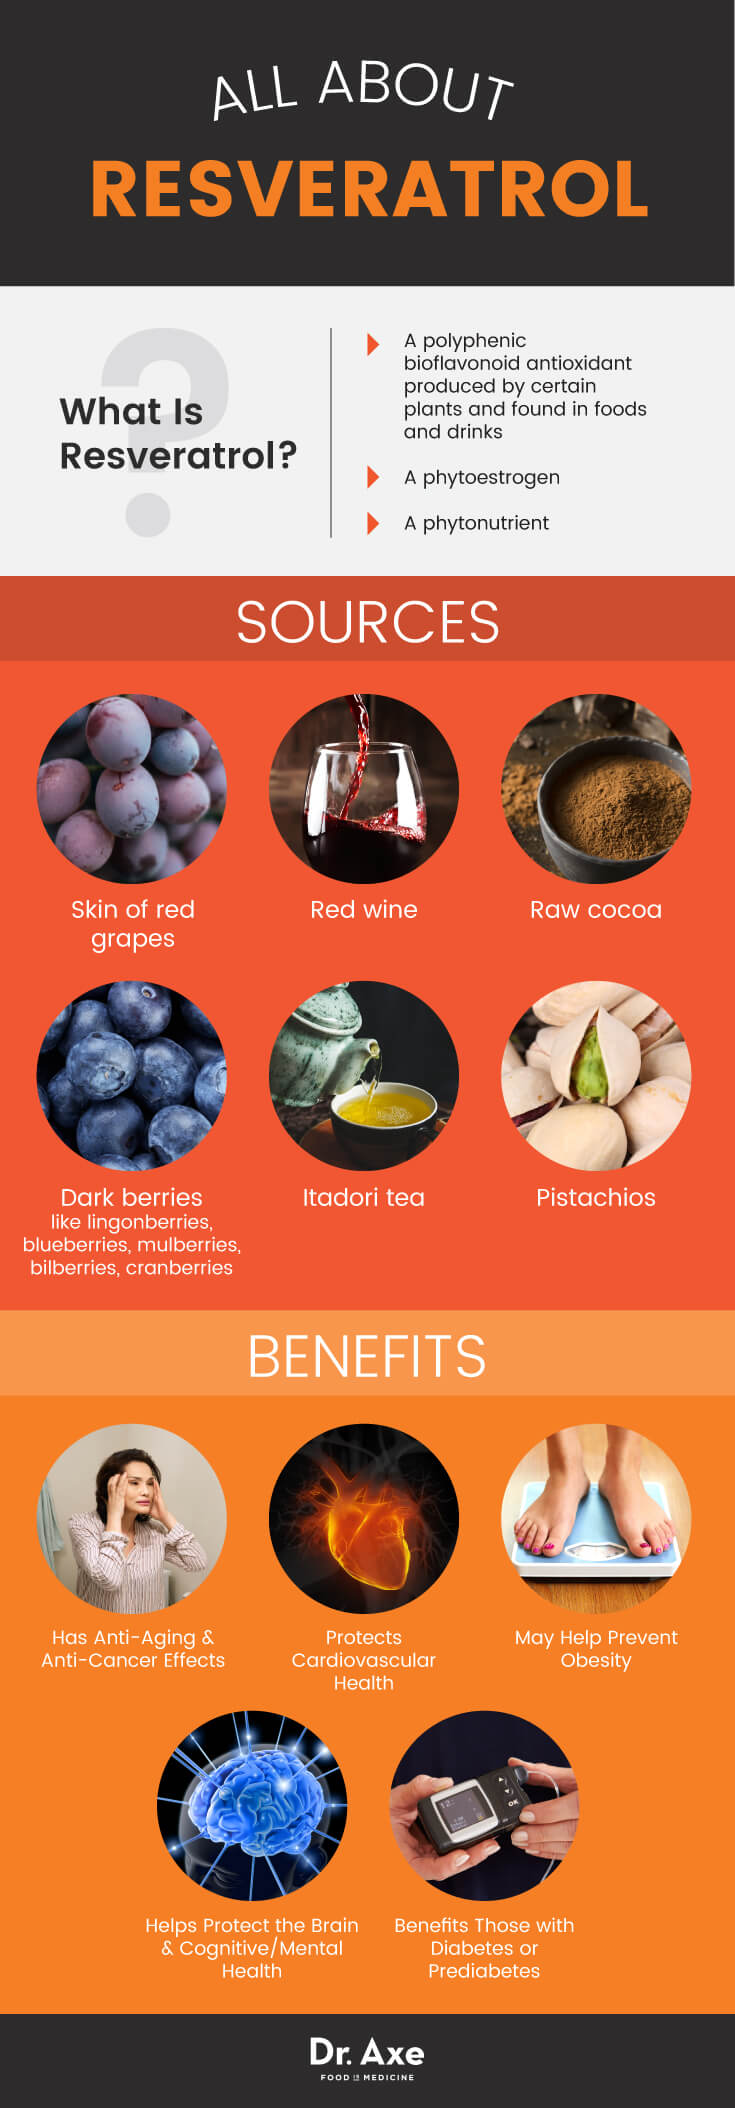 Best Sources Of Resveratrol